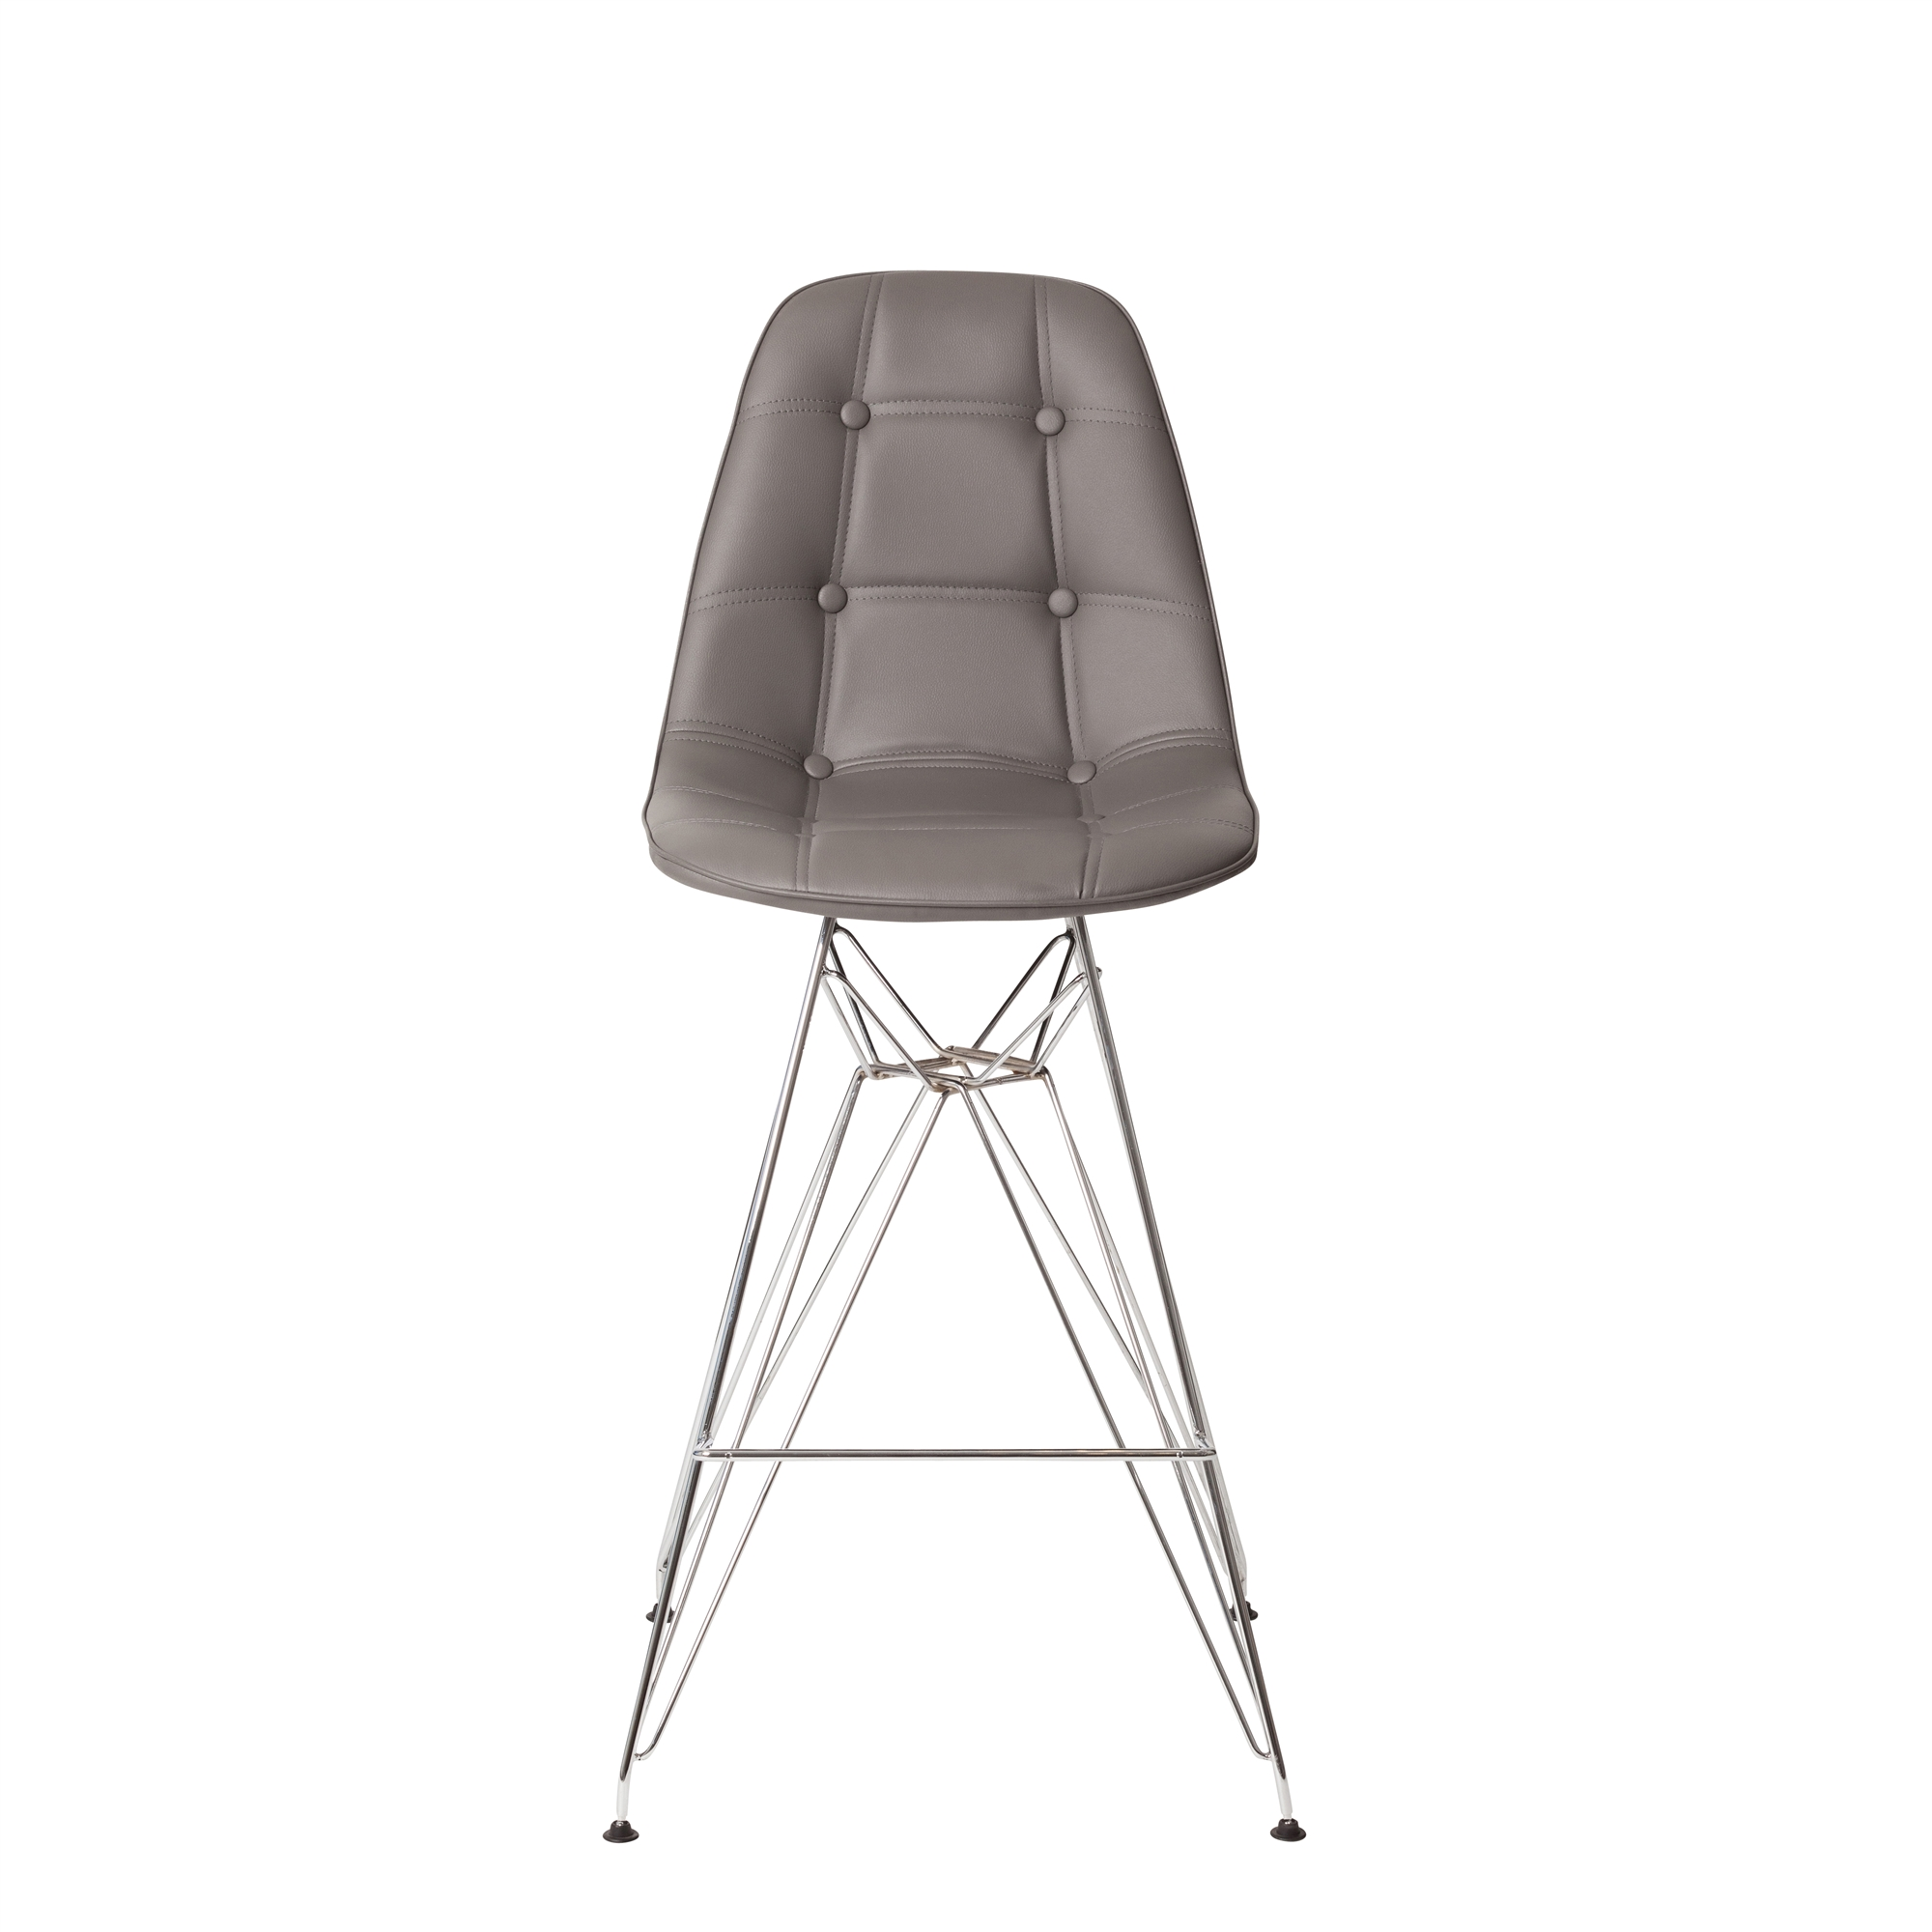 Sensational Chrome Counter Stool In Grey Leather Caraccident5 Cool Chair Designs And Ideas Caraccident5Info